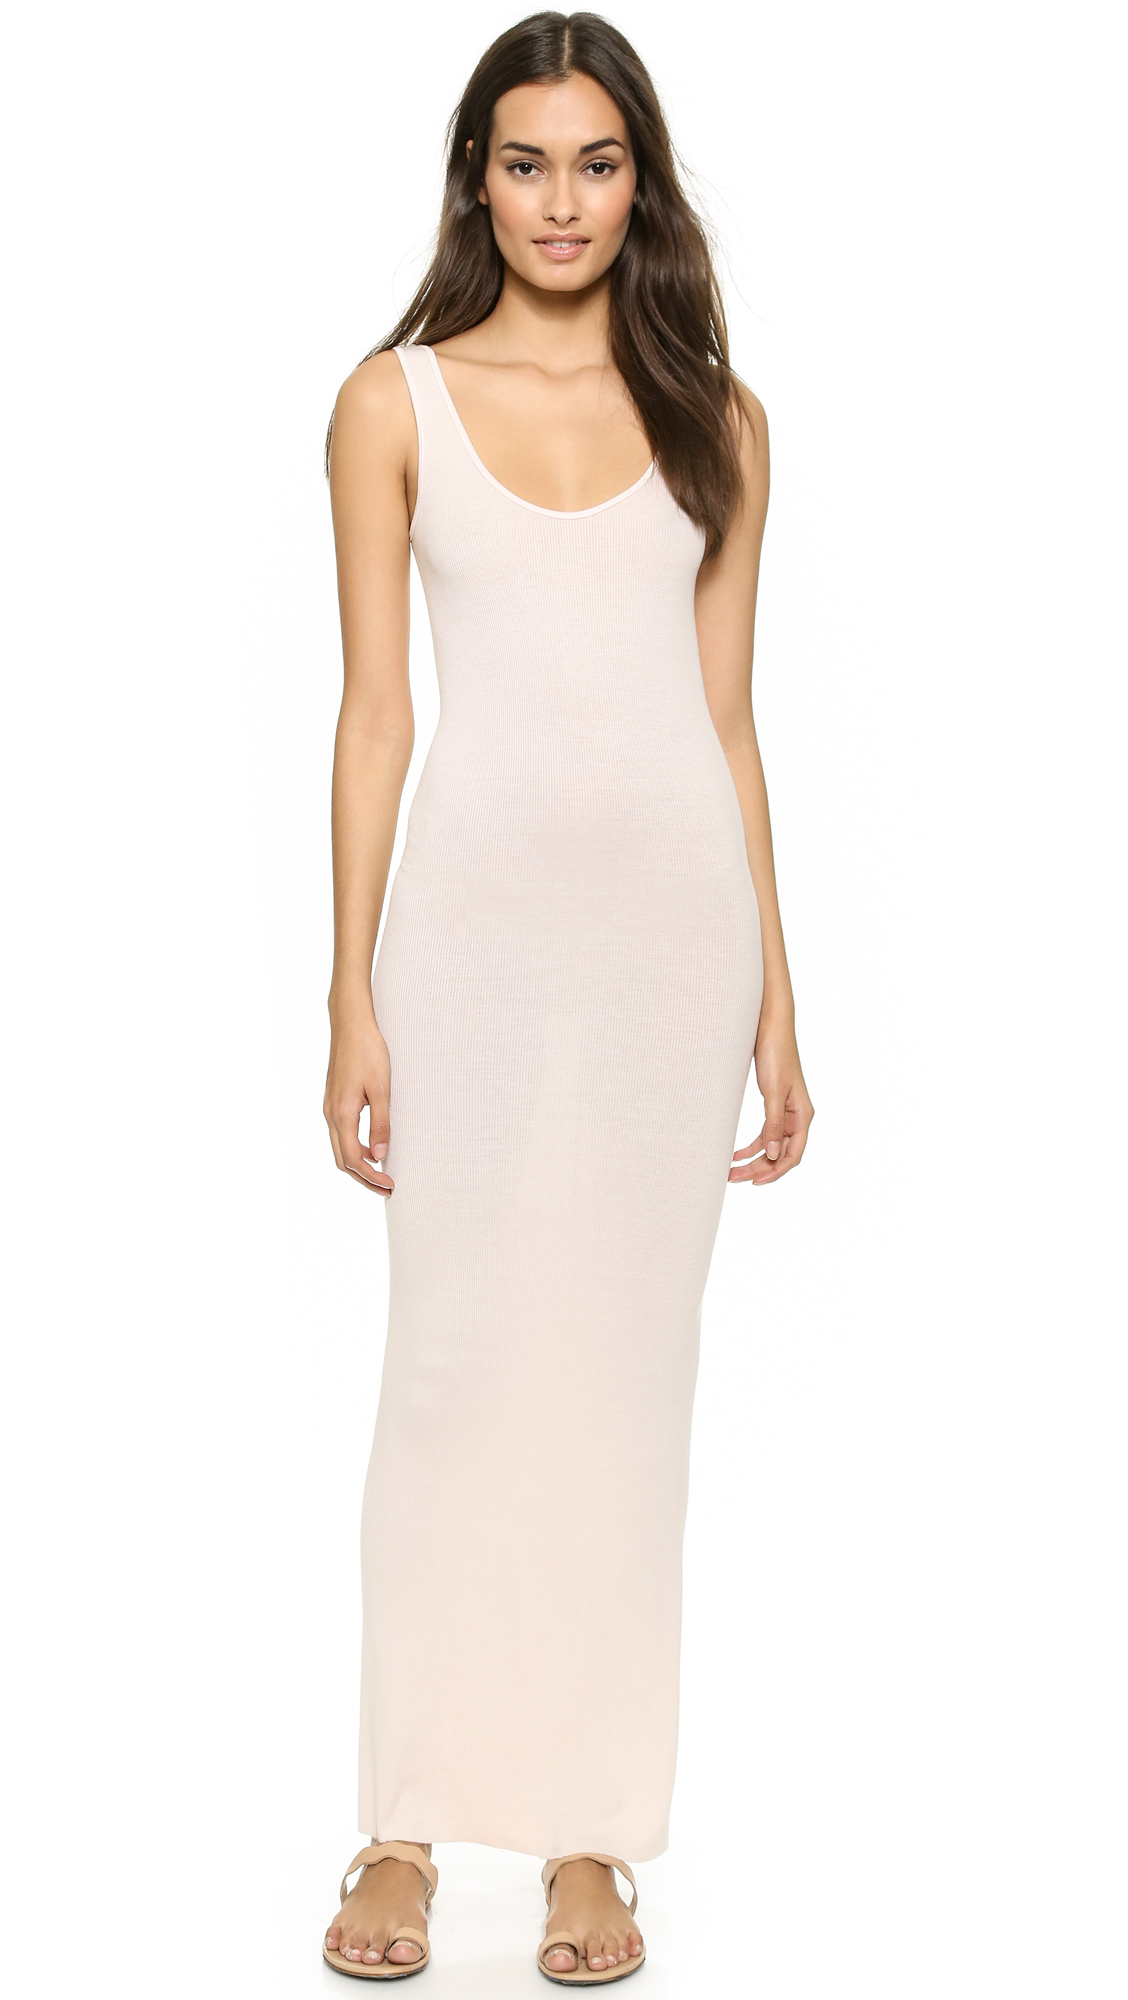 Images of Tank Maxi Dress - The Fashions Of Paradise